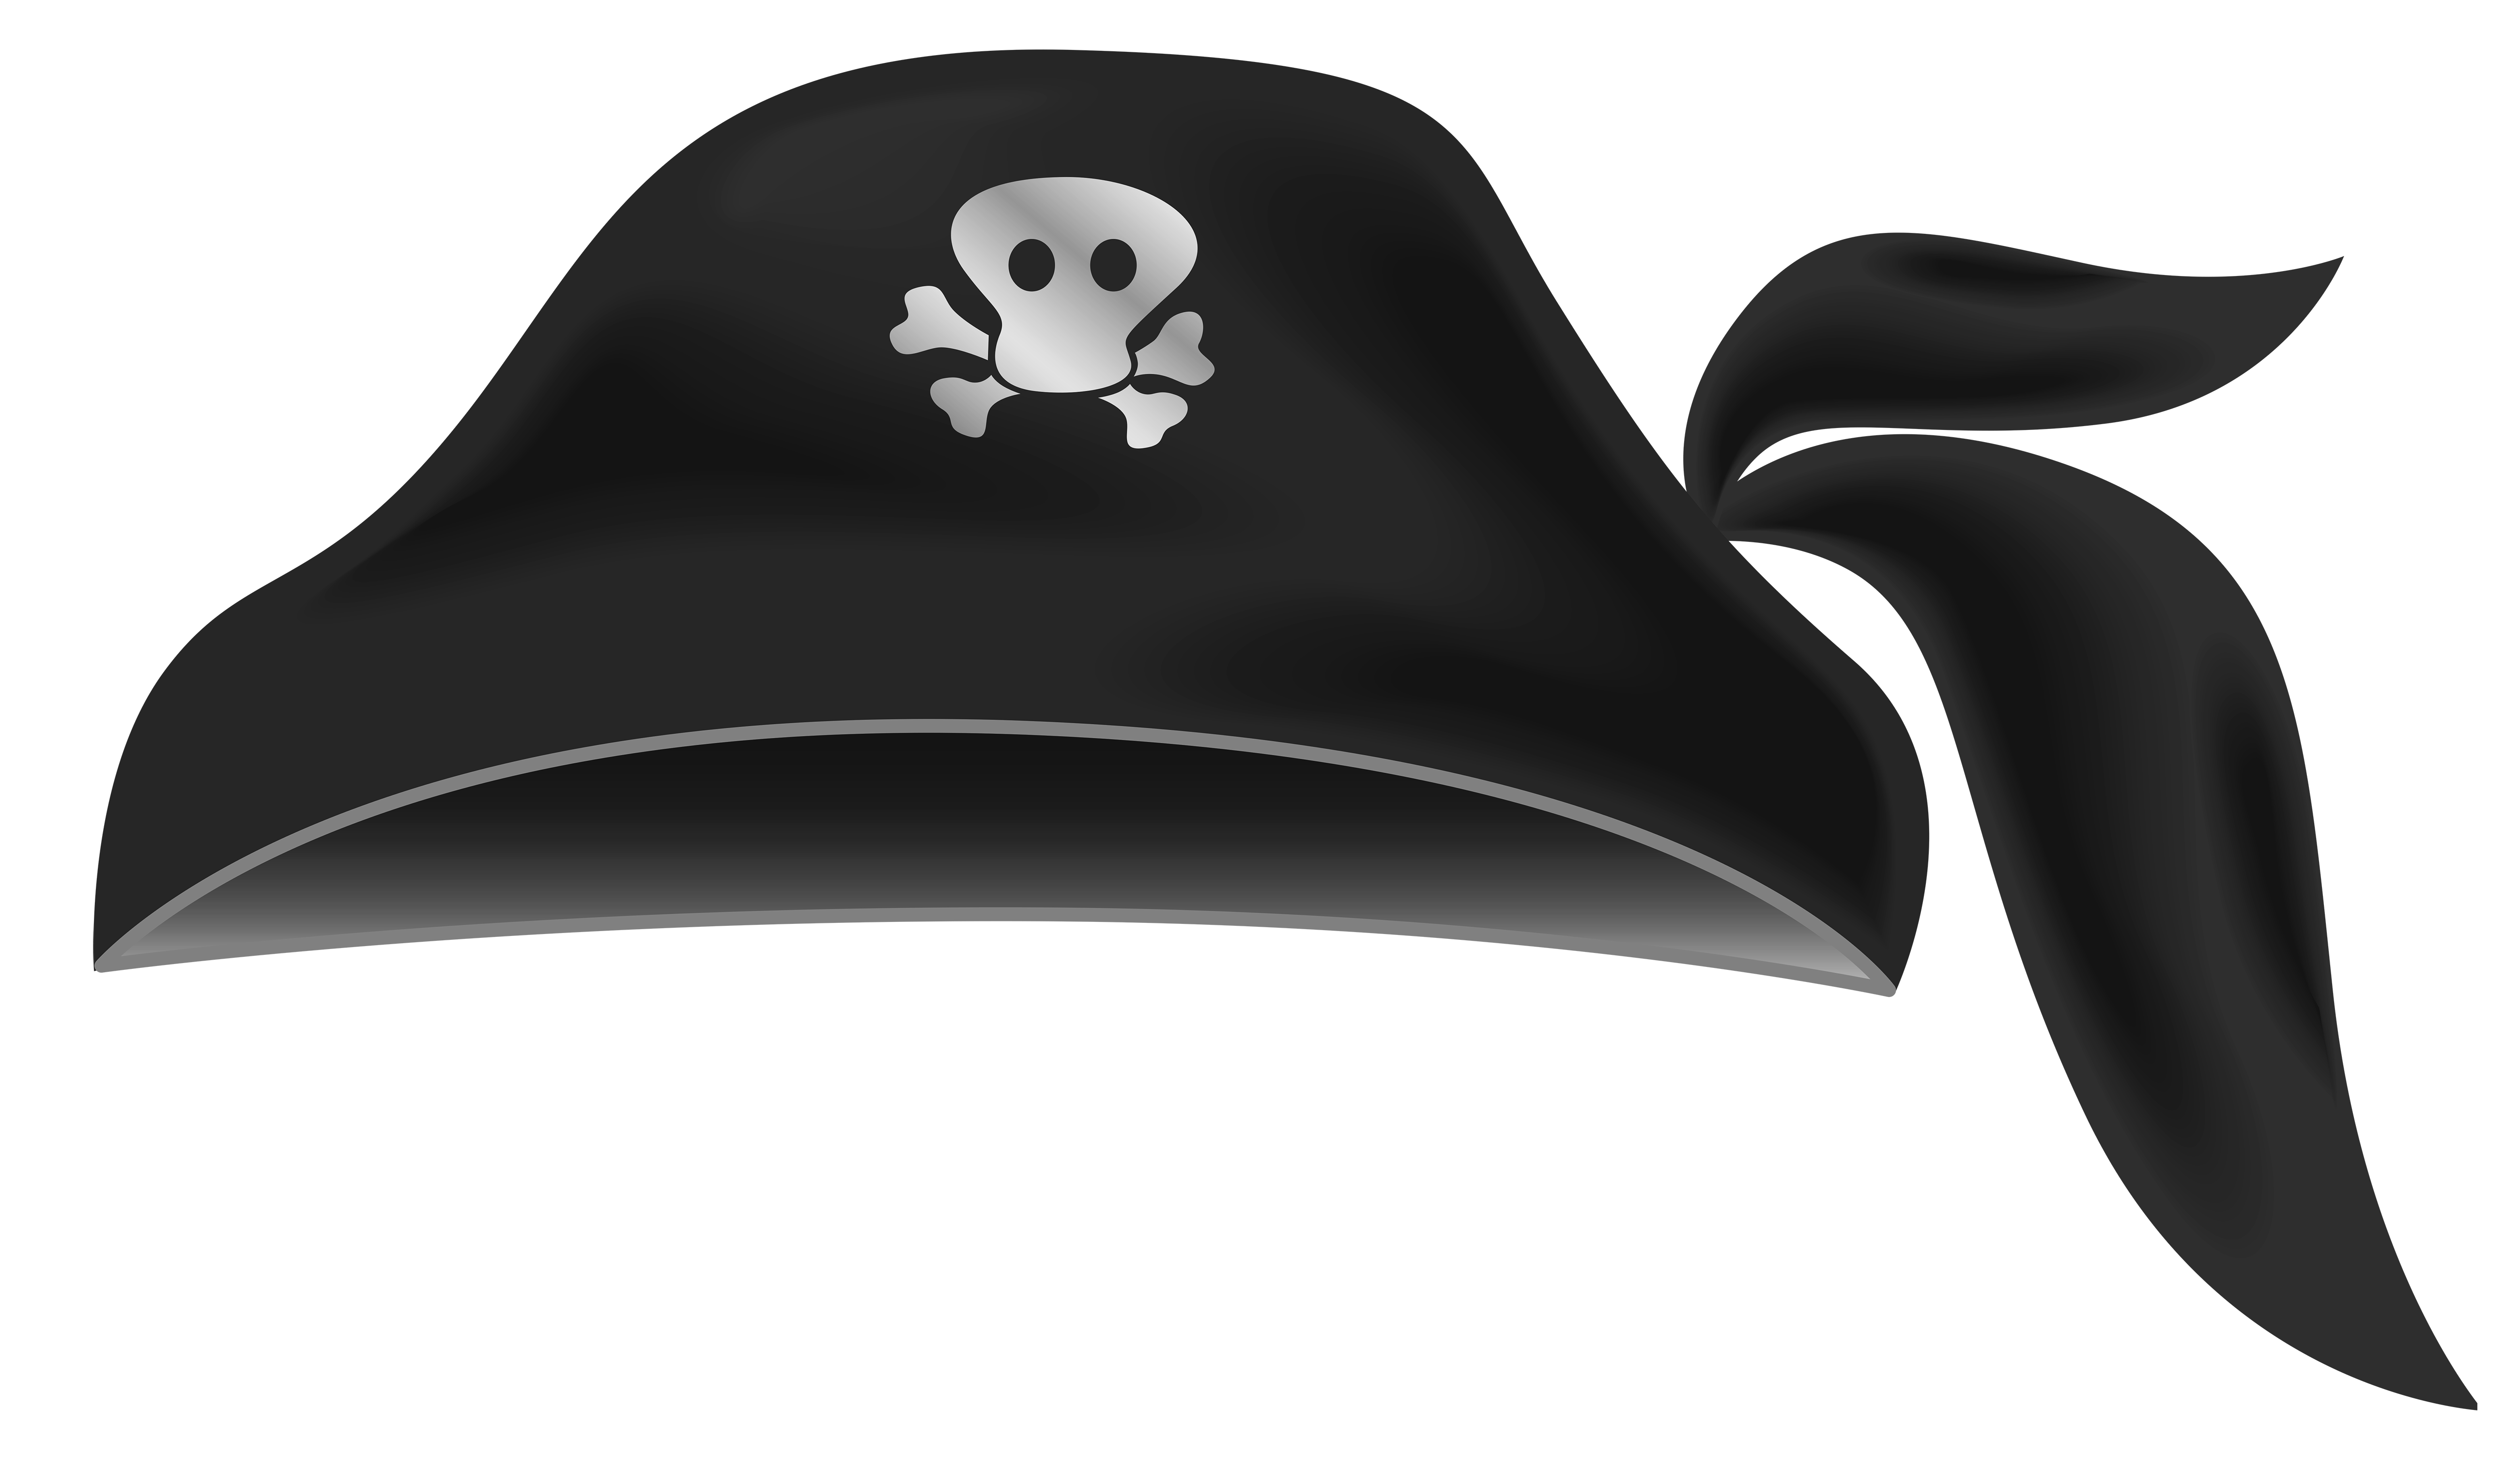 Black pirate hat gallery. Clipart rock transparent background